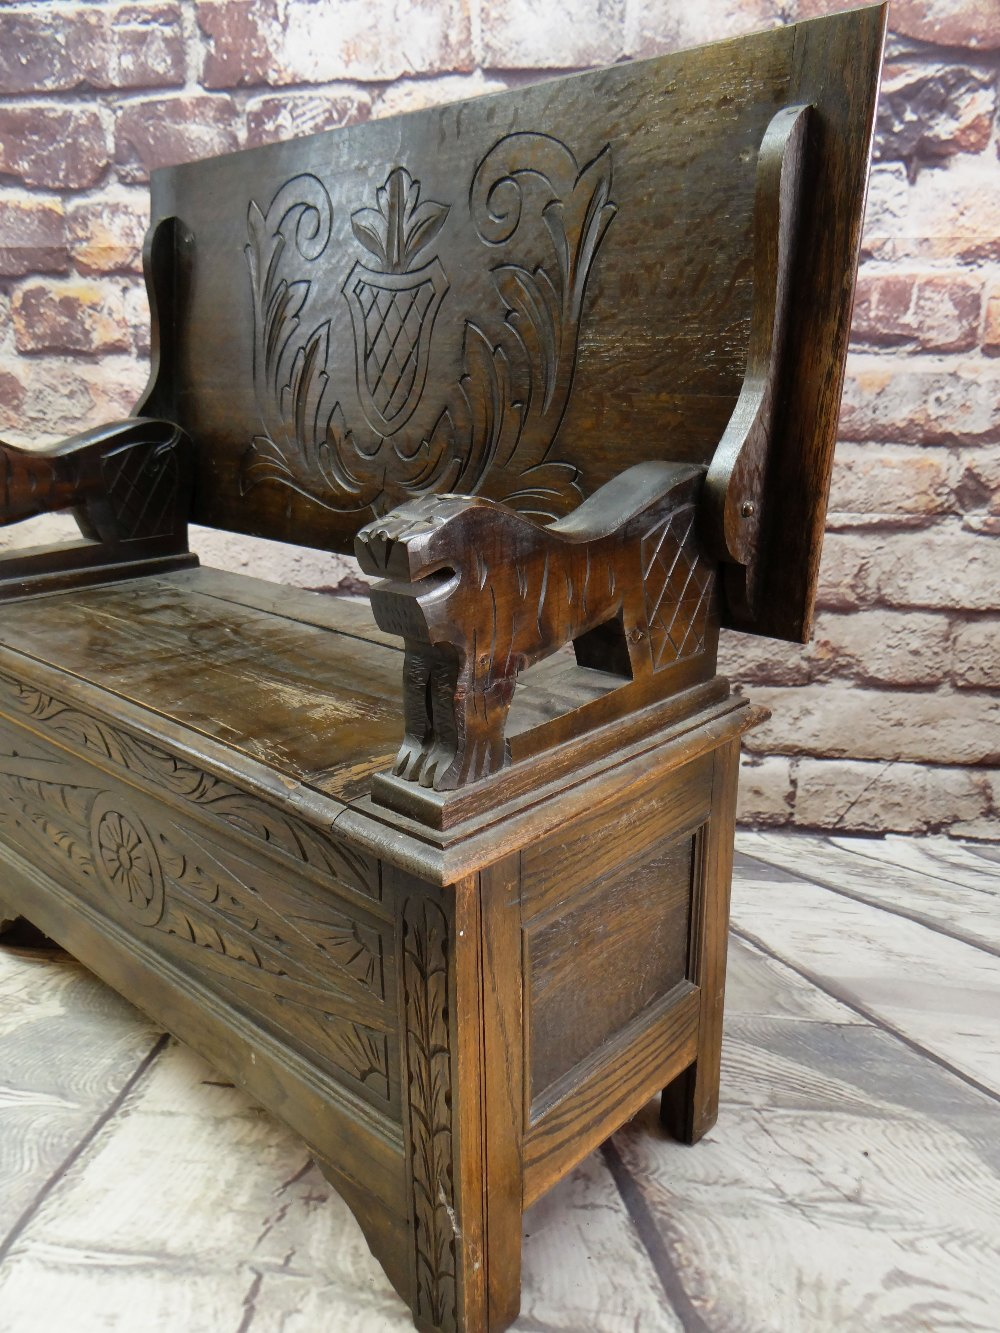 REPRODUCTION OAK MONK'S BENCH, lions carved arms and carved shiled top, 107cms wide - Image 2 of 5